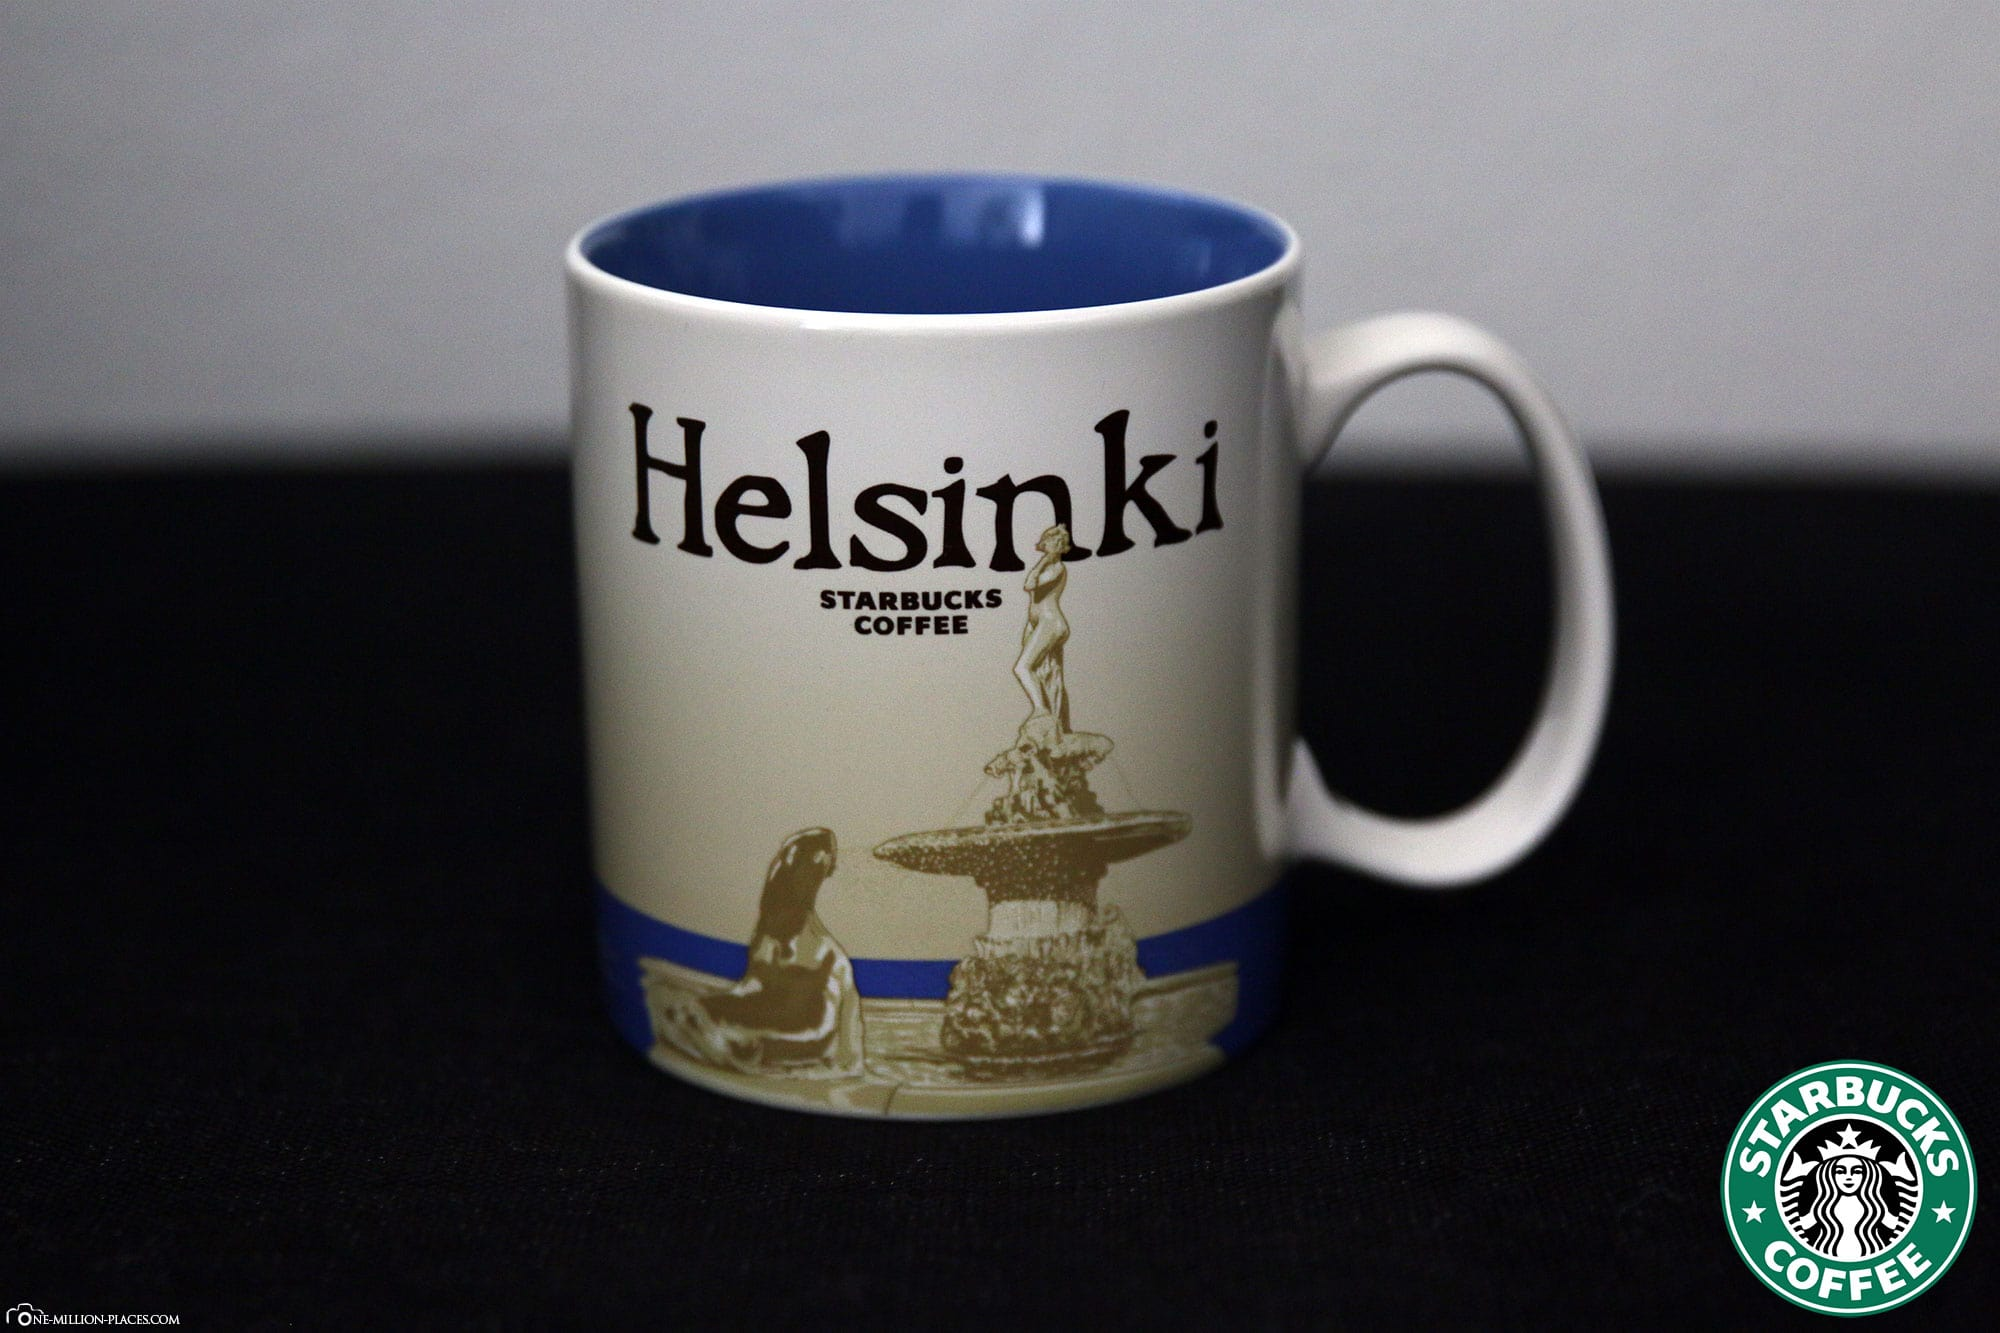 Helsinki, Starbucks Cup, Global Icon Series, City Mugs, Collection, Finland, Travelreport